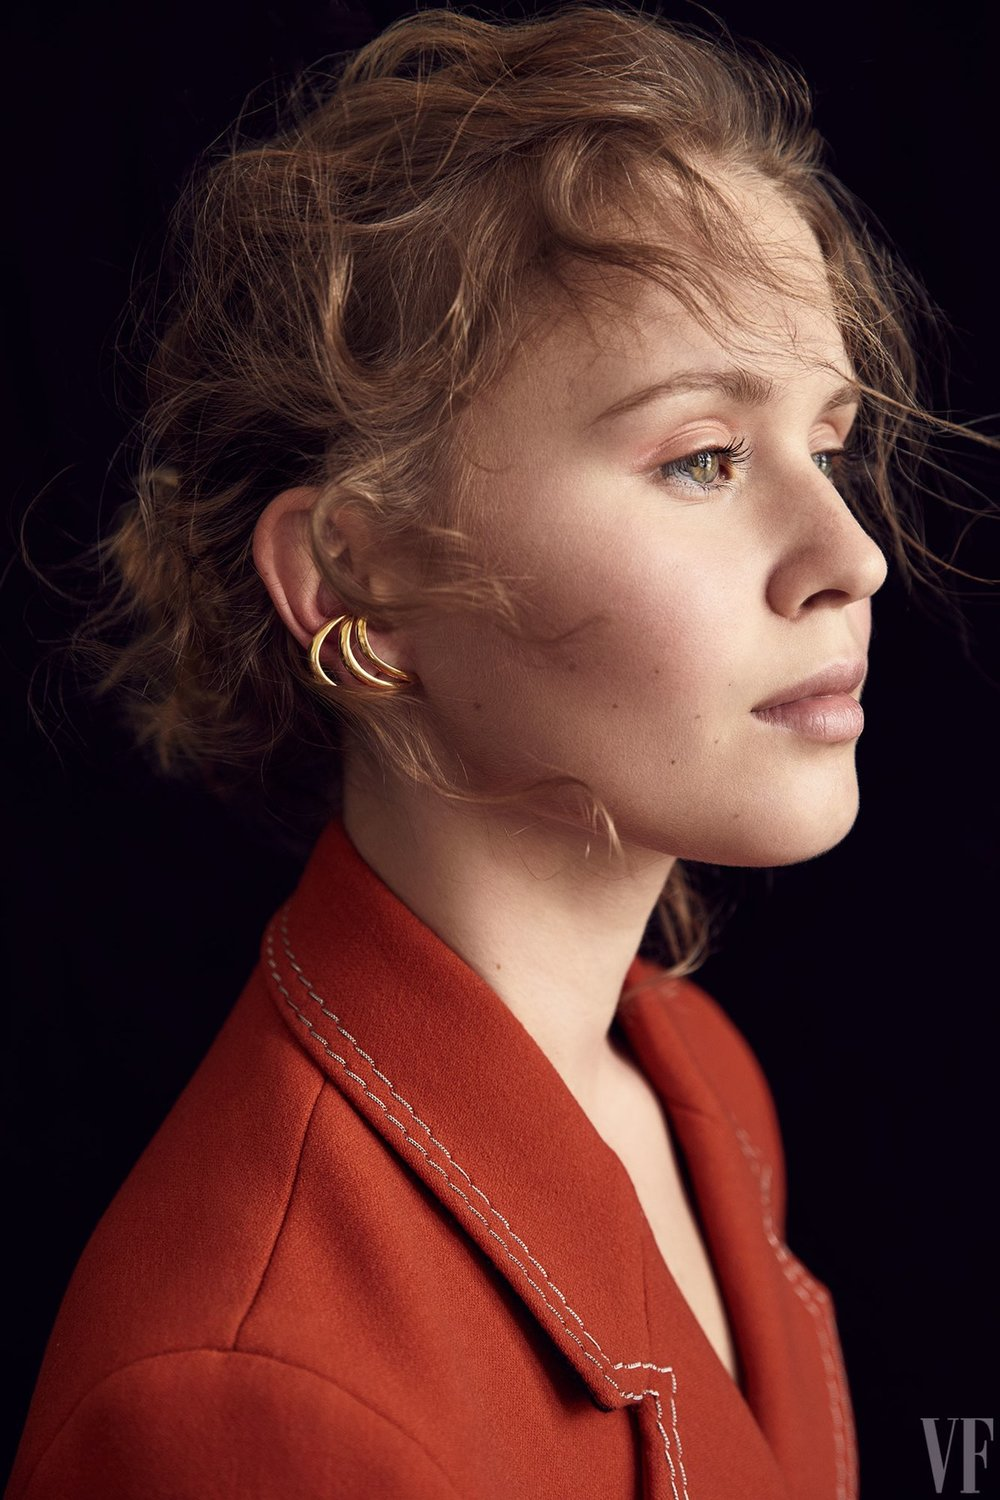 Vanity Fair August 2018 Dora Earring.jpg